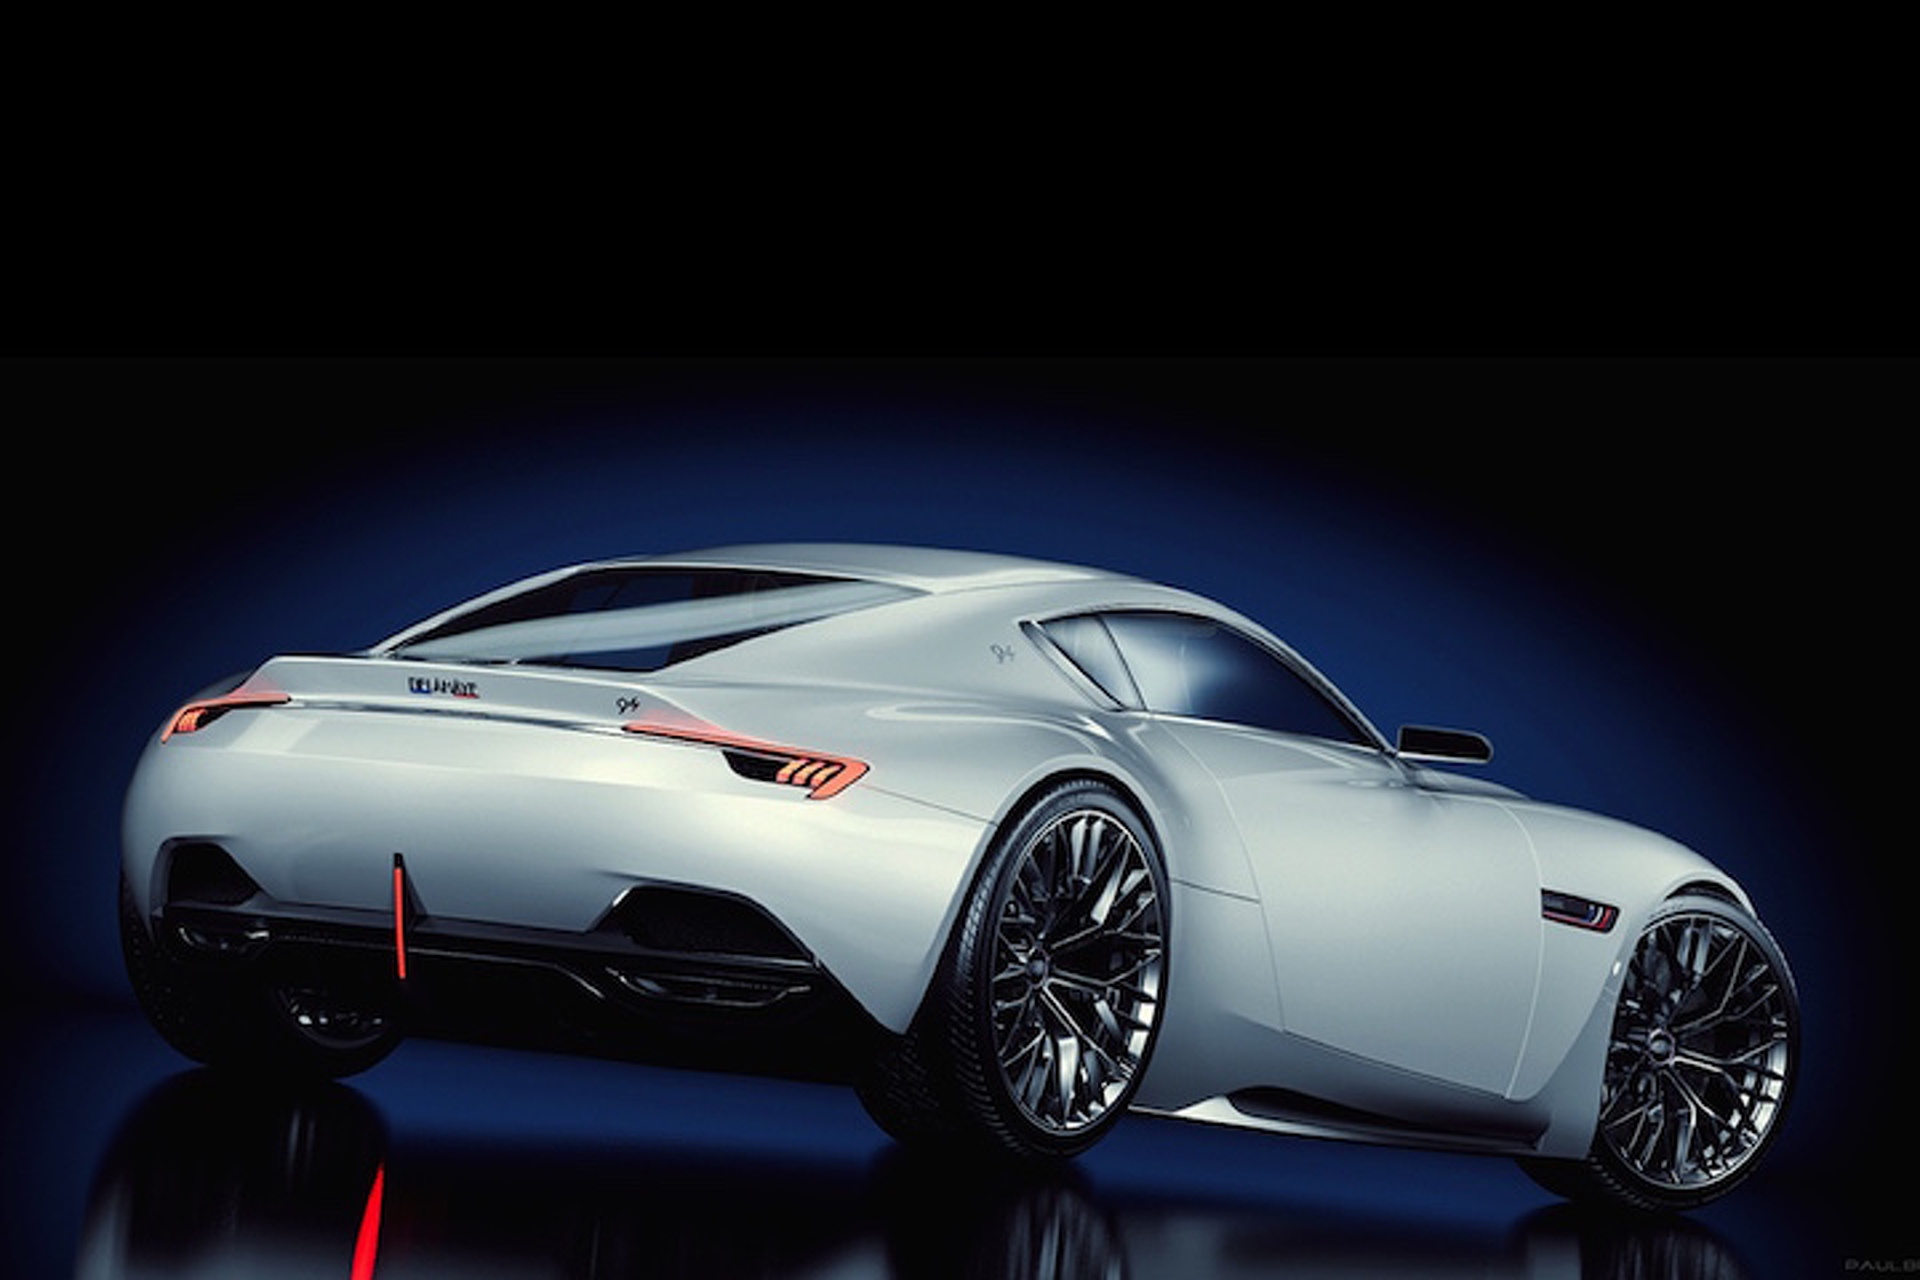 The Delahaye Spirit Lives On Through This Stunning Sports Car Concept